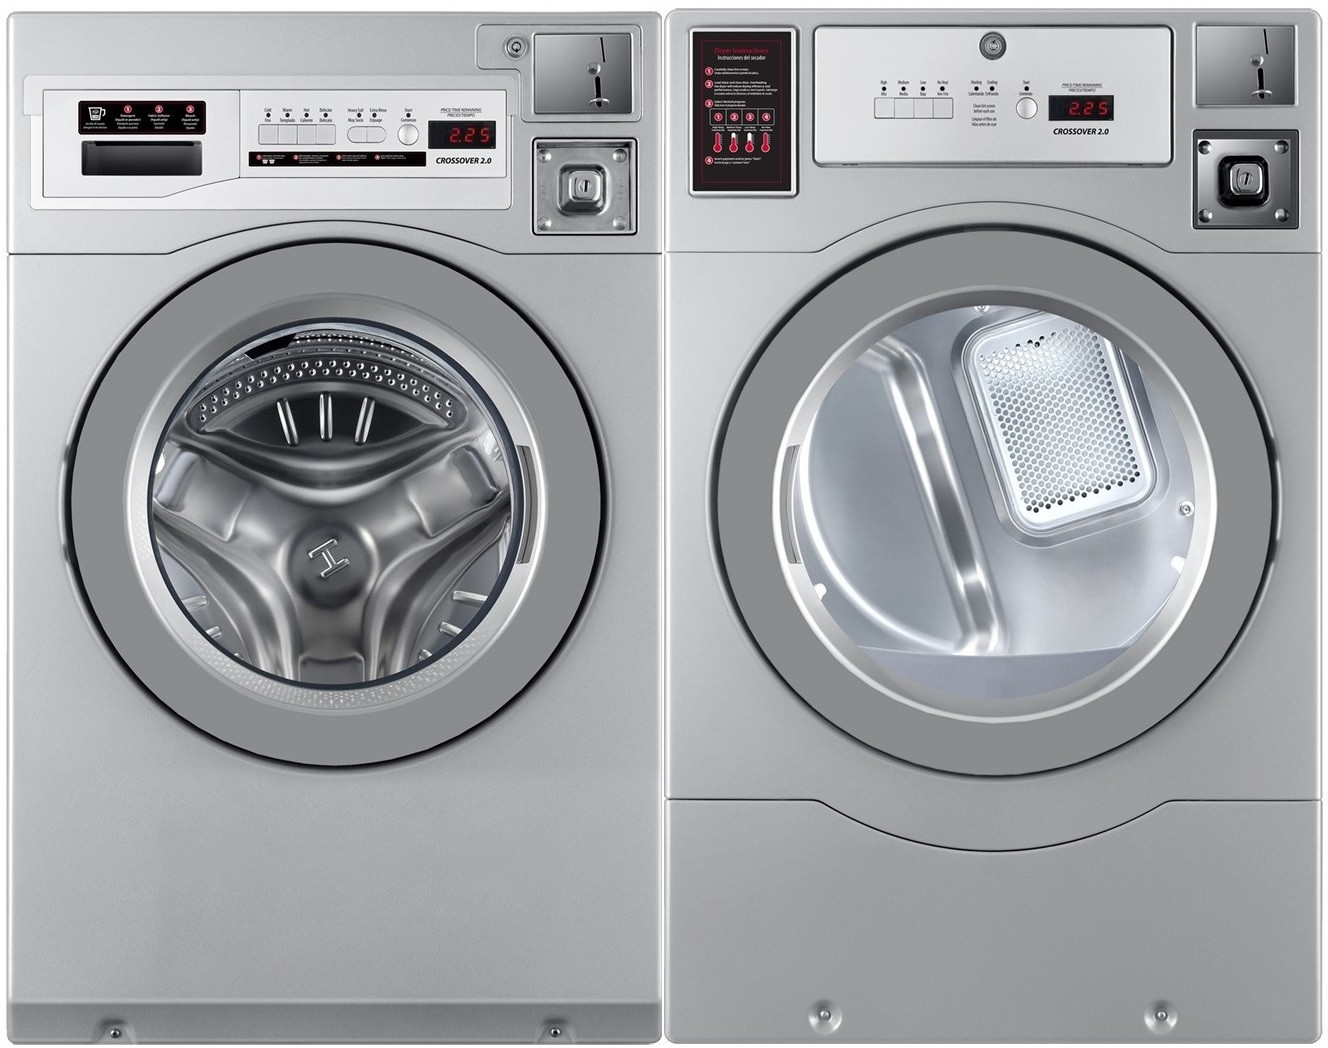 Crossover Crossover 2 0 Side-by-Side Washer & Dryer Set